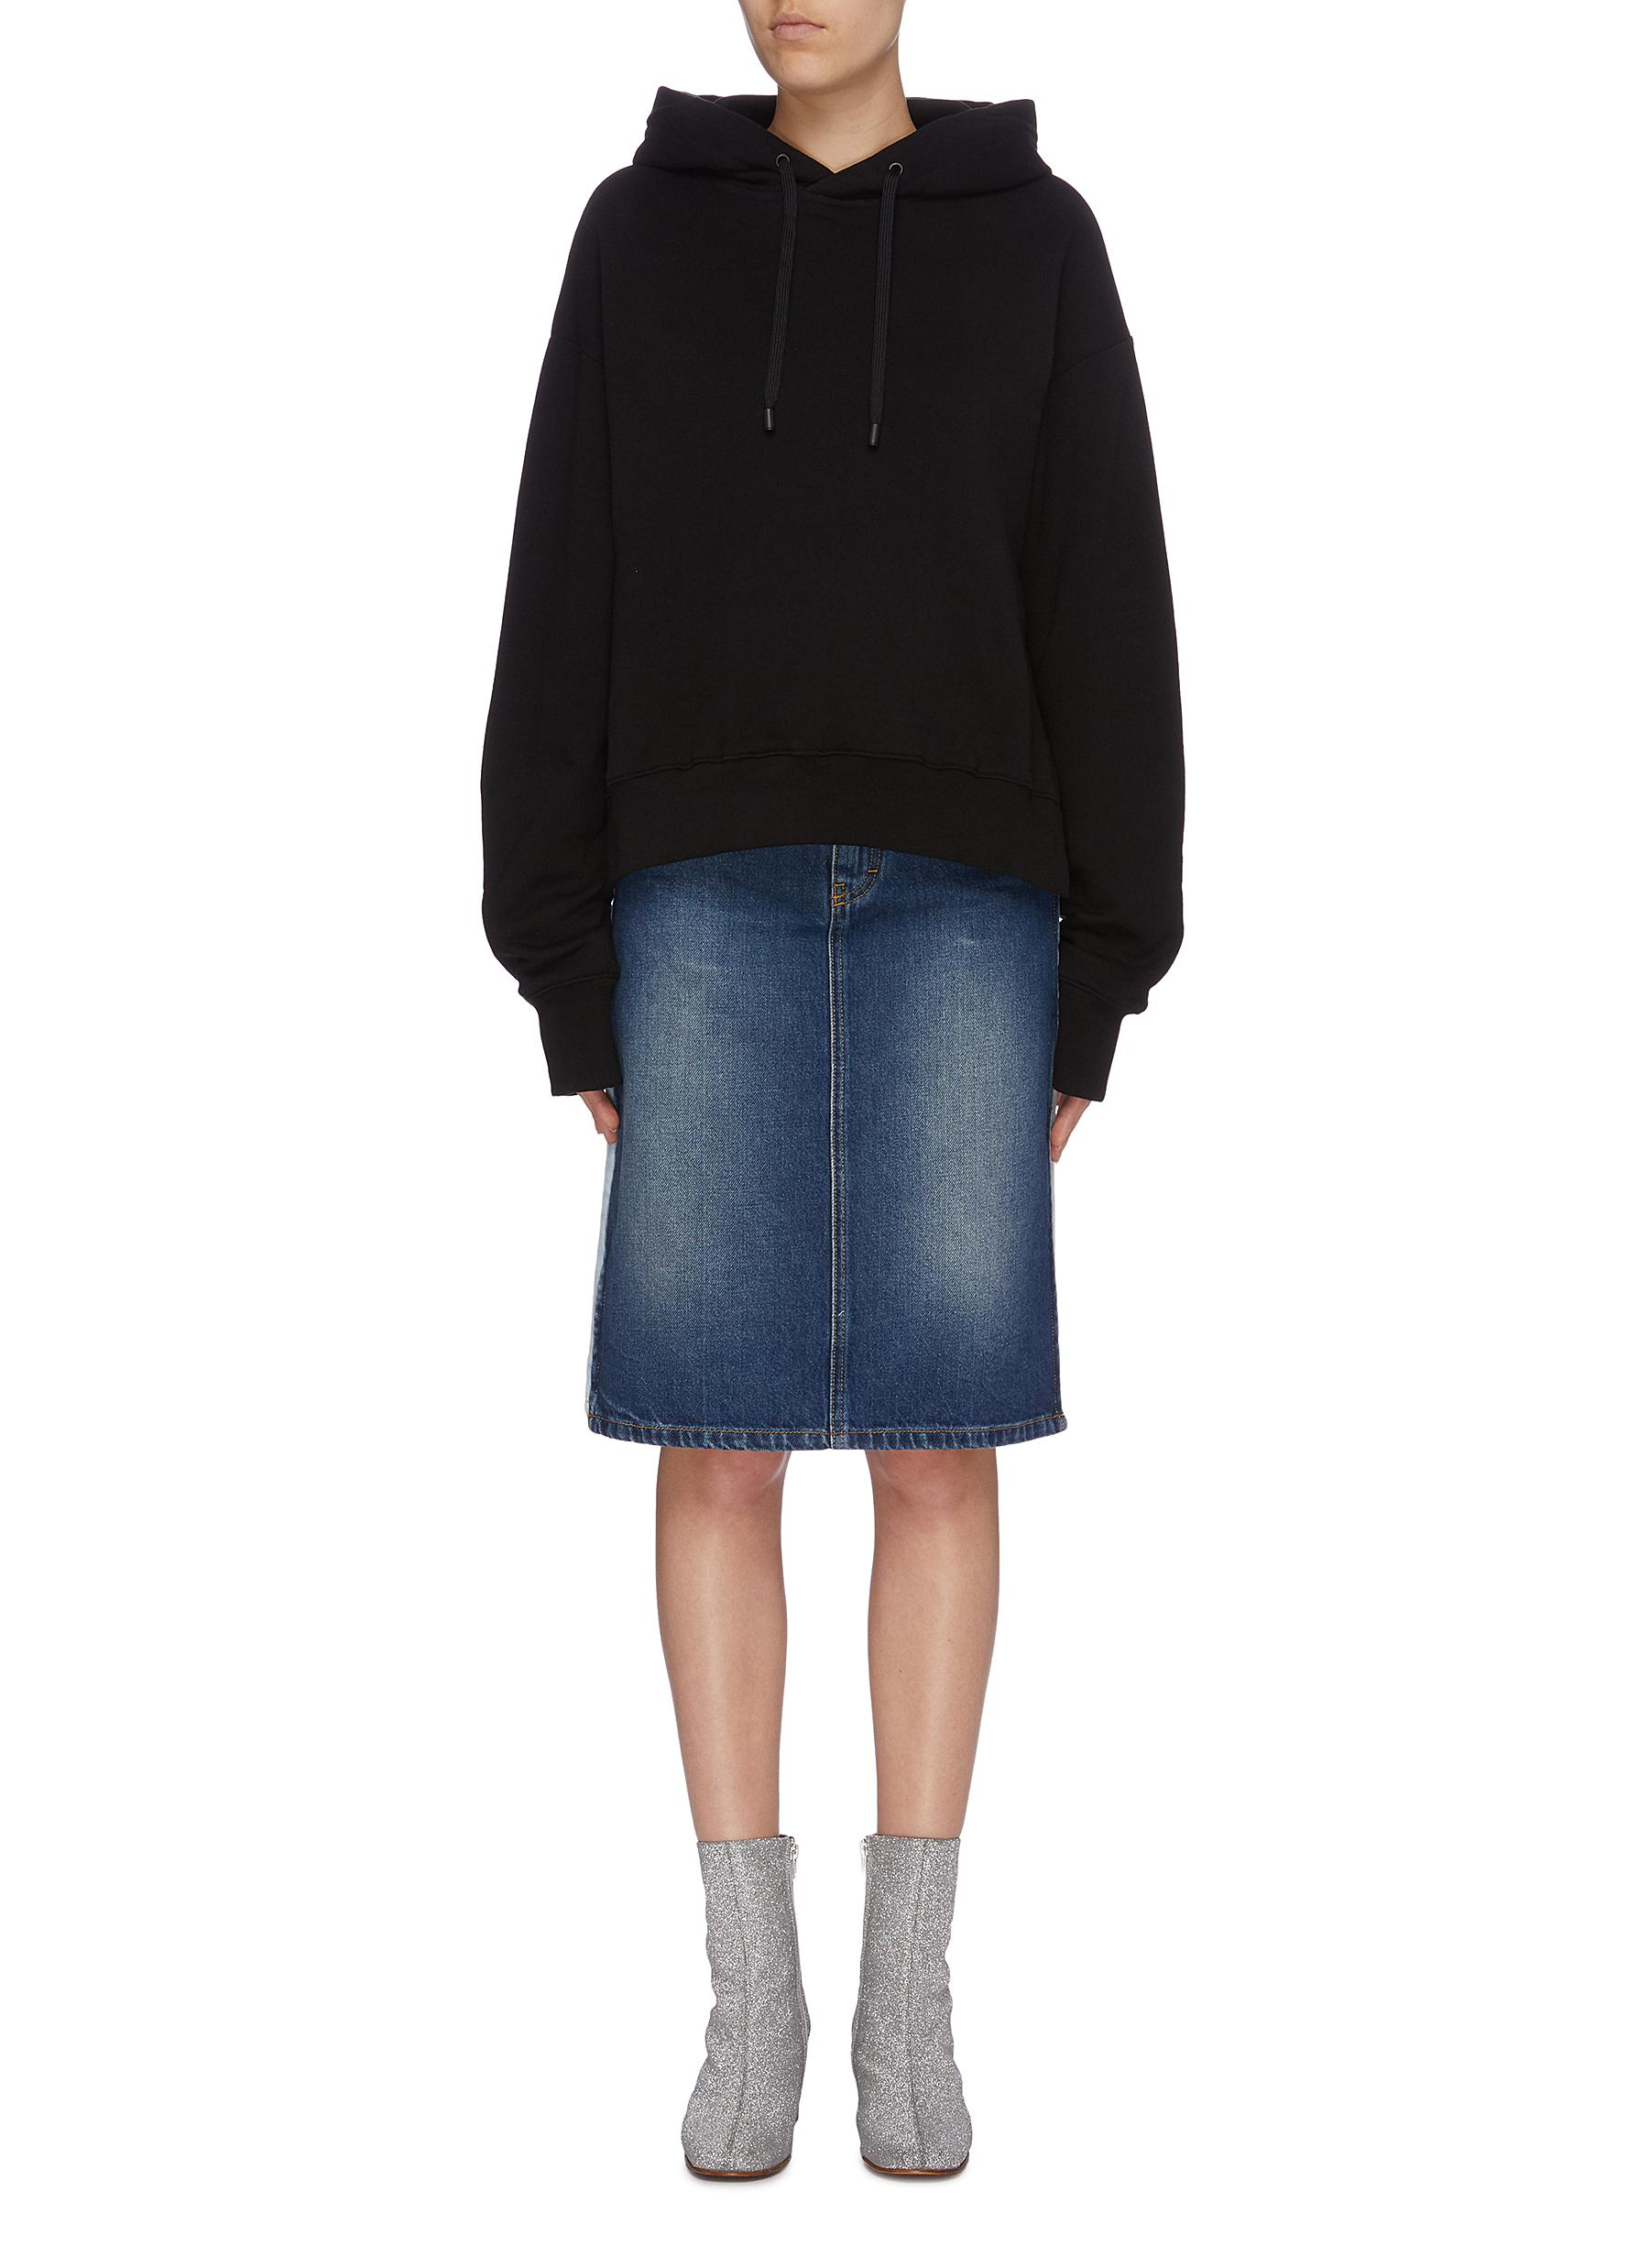 Drawstring back hoodie by Maison Margiela